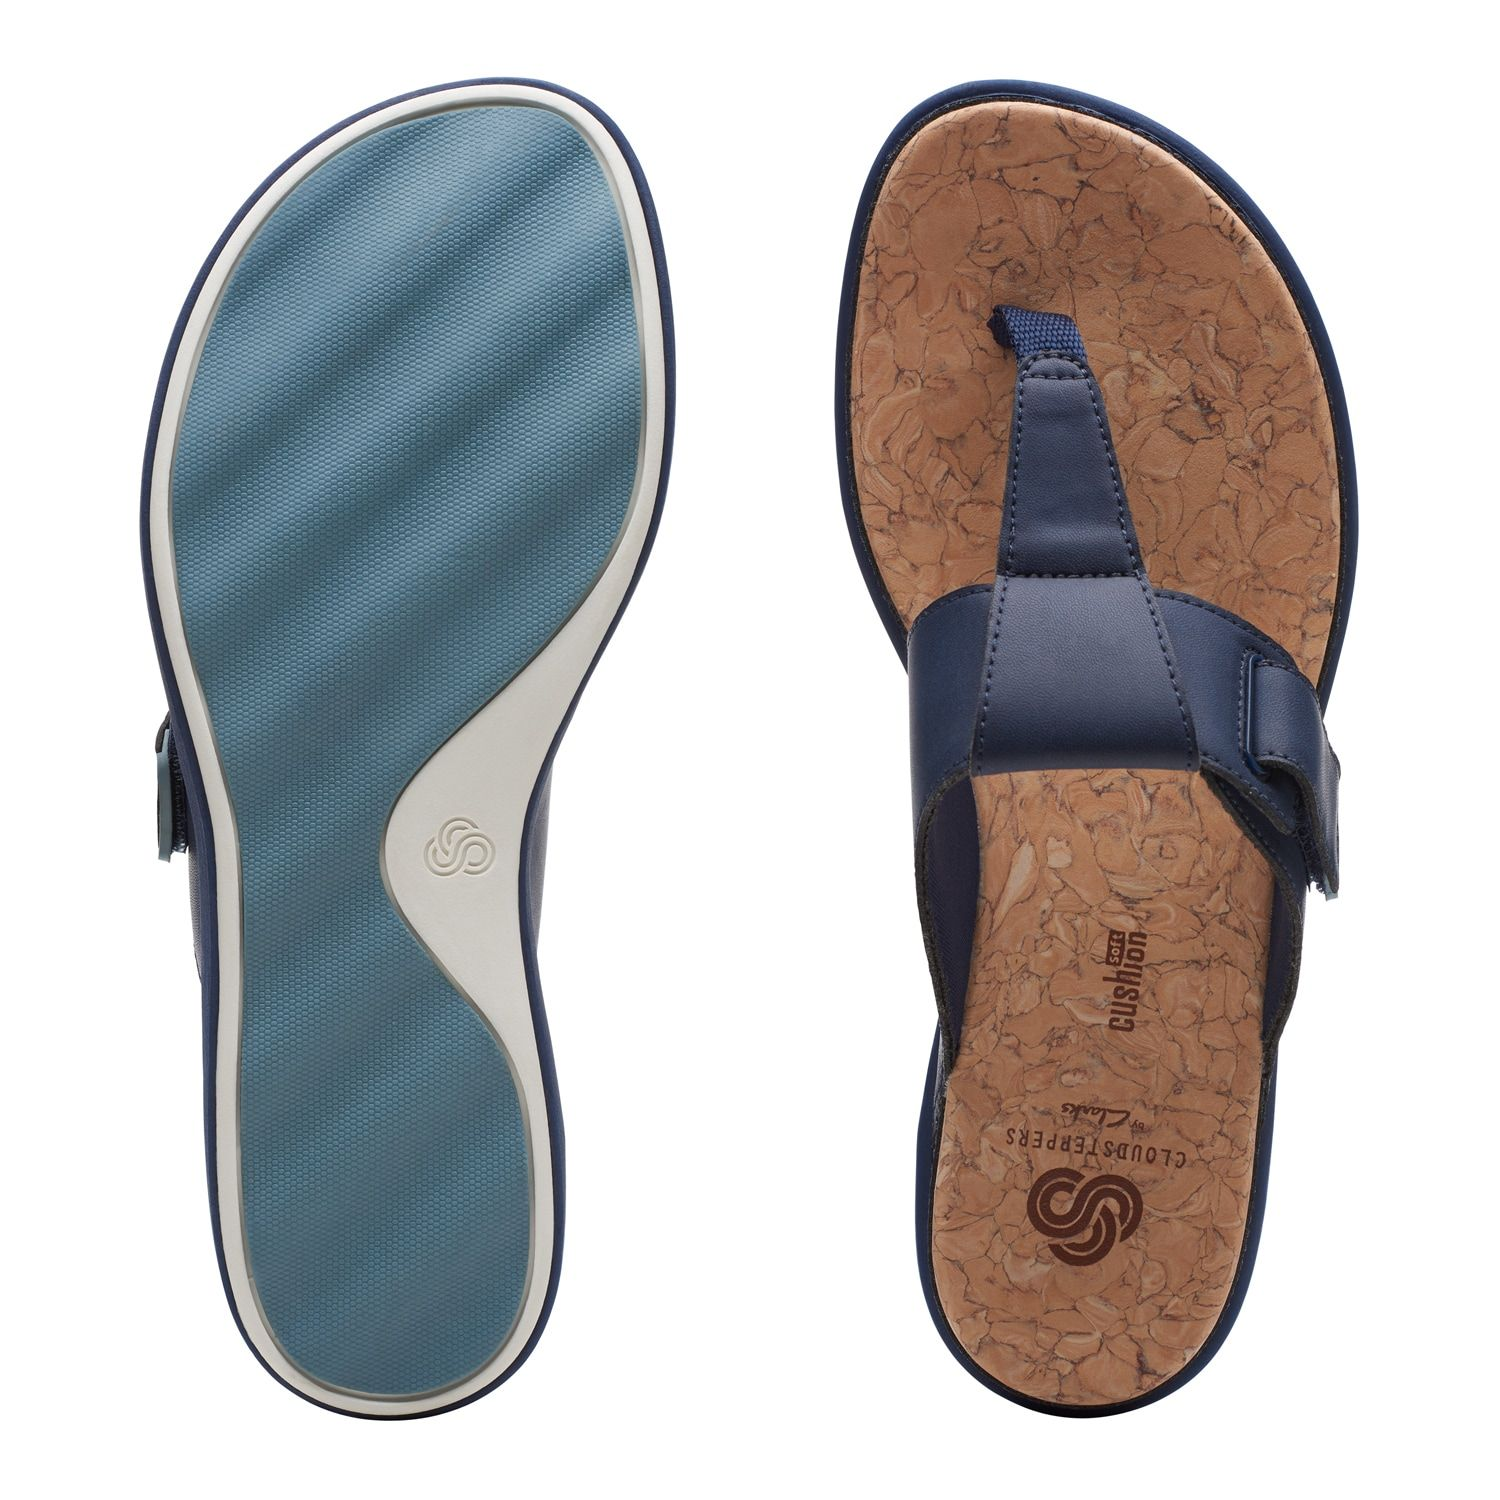 Clarks Cloudsteppers June Reef Womens Flip Flop Sandals  -3242